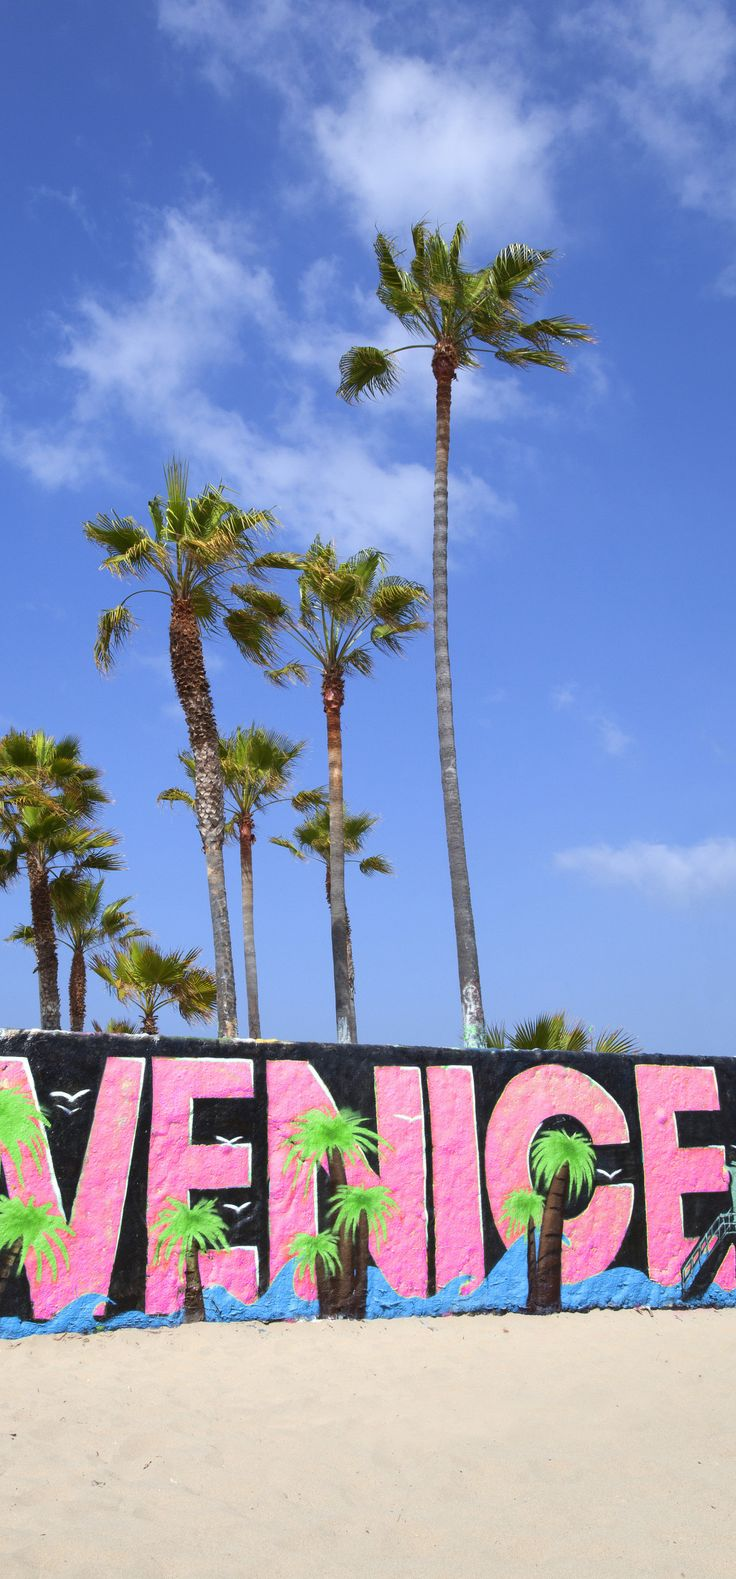 Venice Beach, California, USA